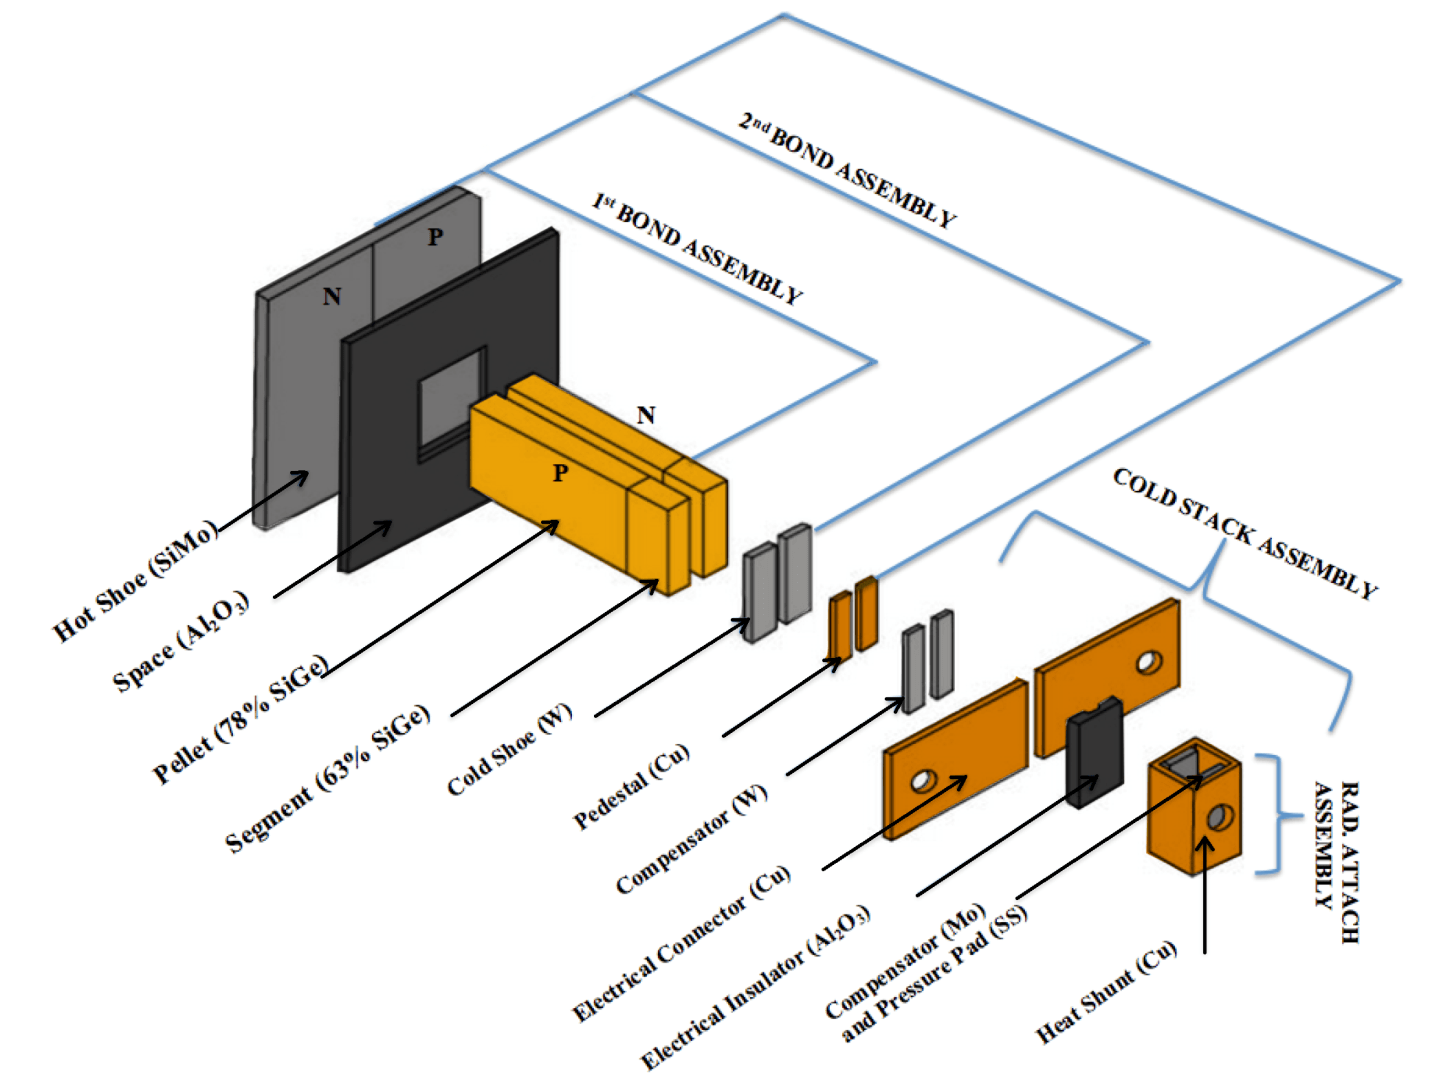 thermoelectric generator diagram light switch wiring nz application of silicon germanium thermoelectrics in space